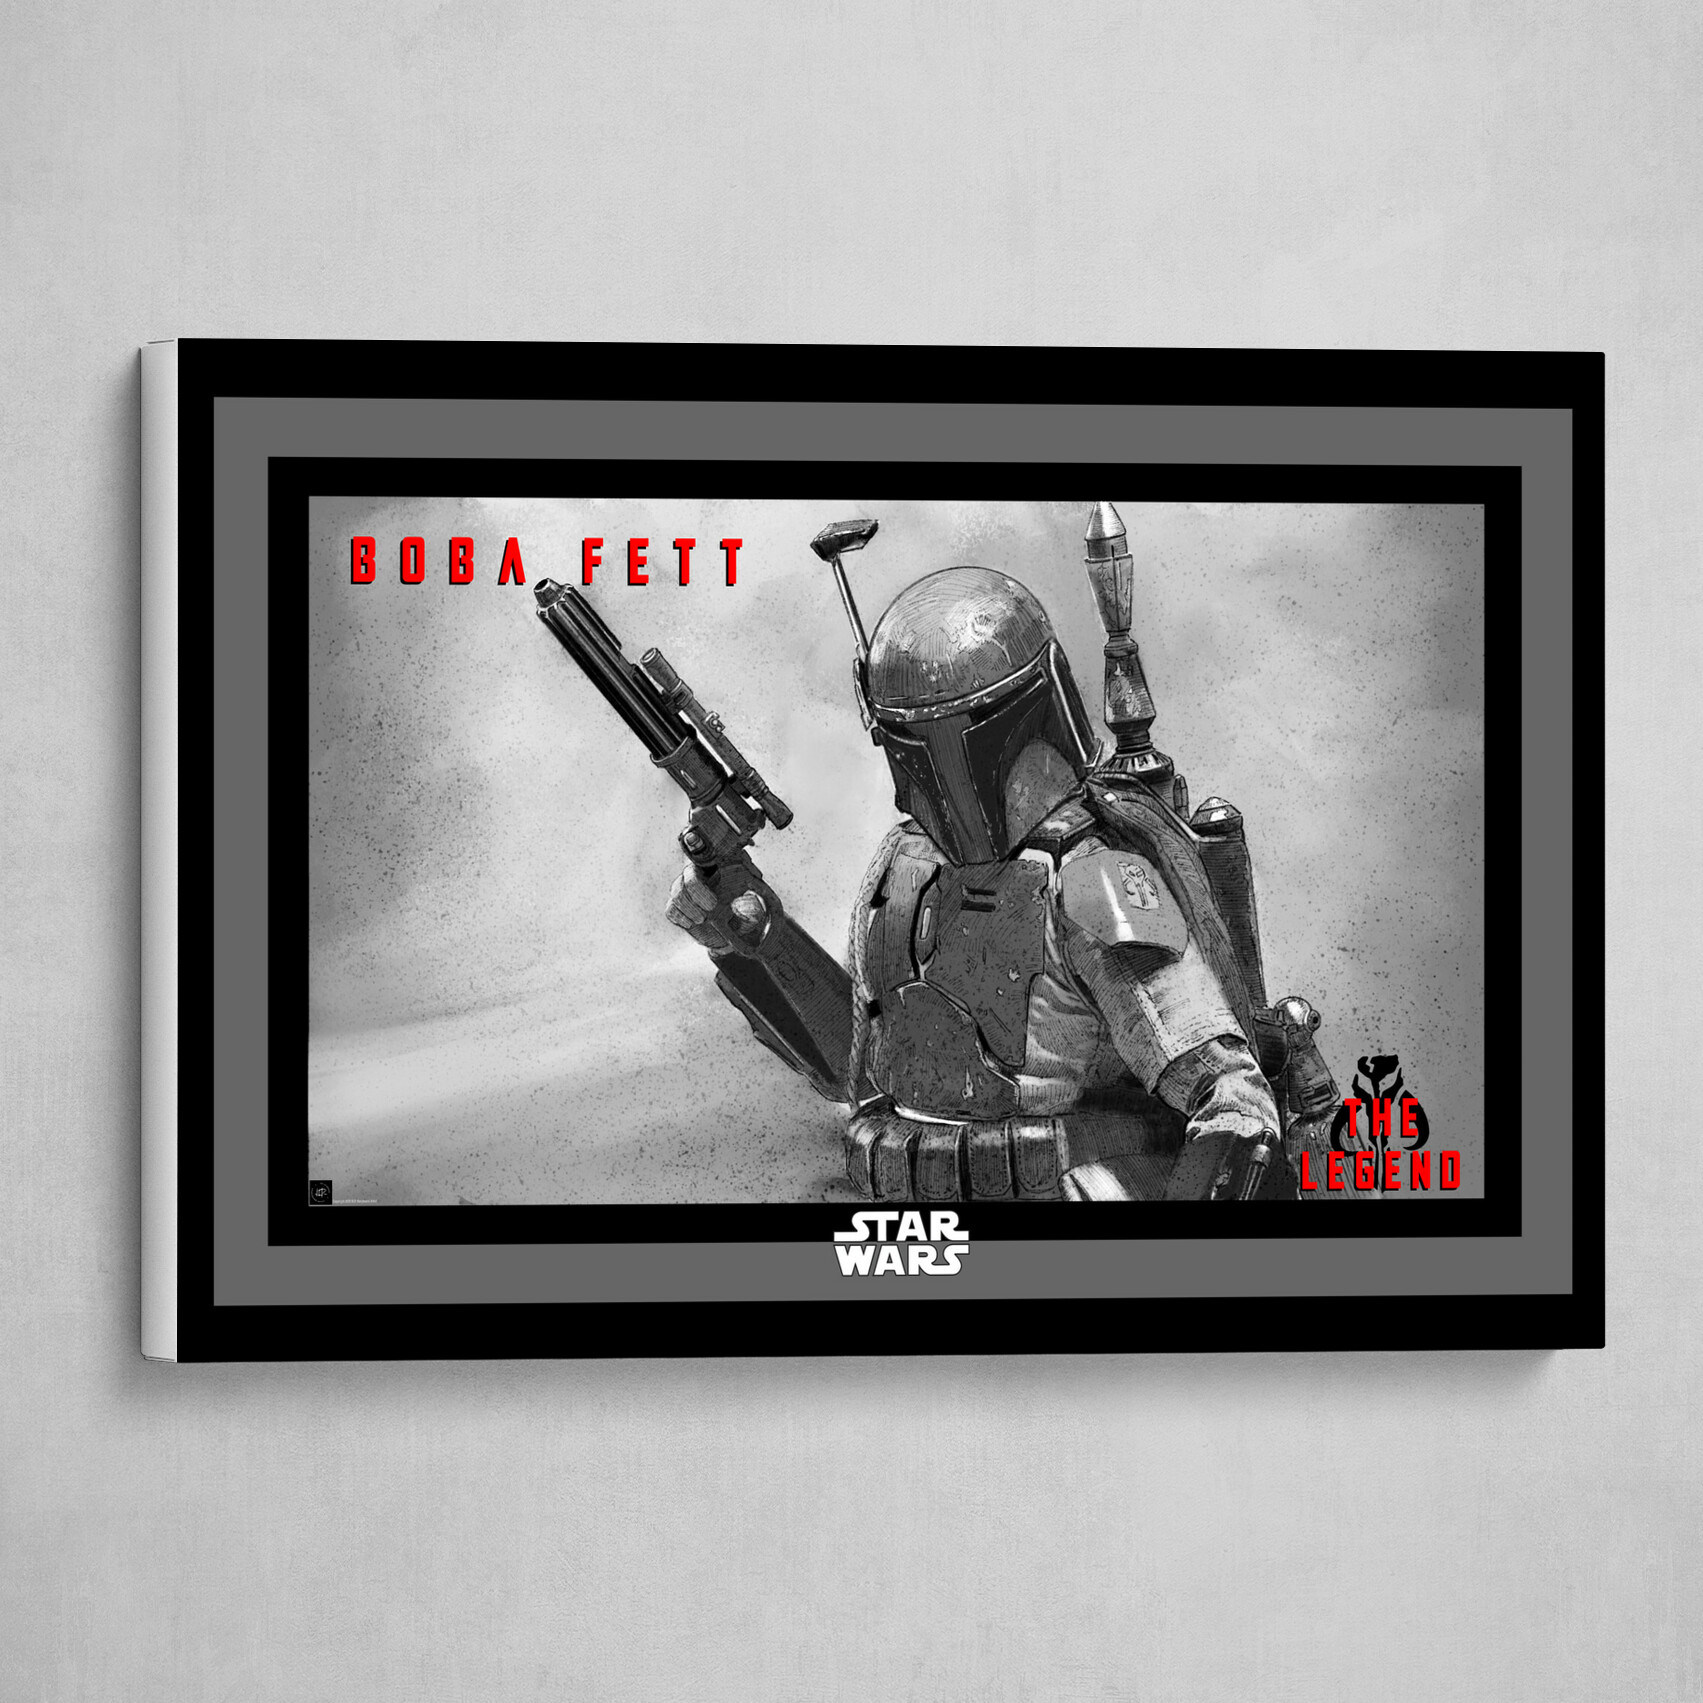 Boba Fett - The Legend Poster in B&W with Red